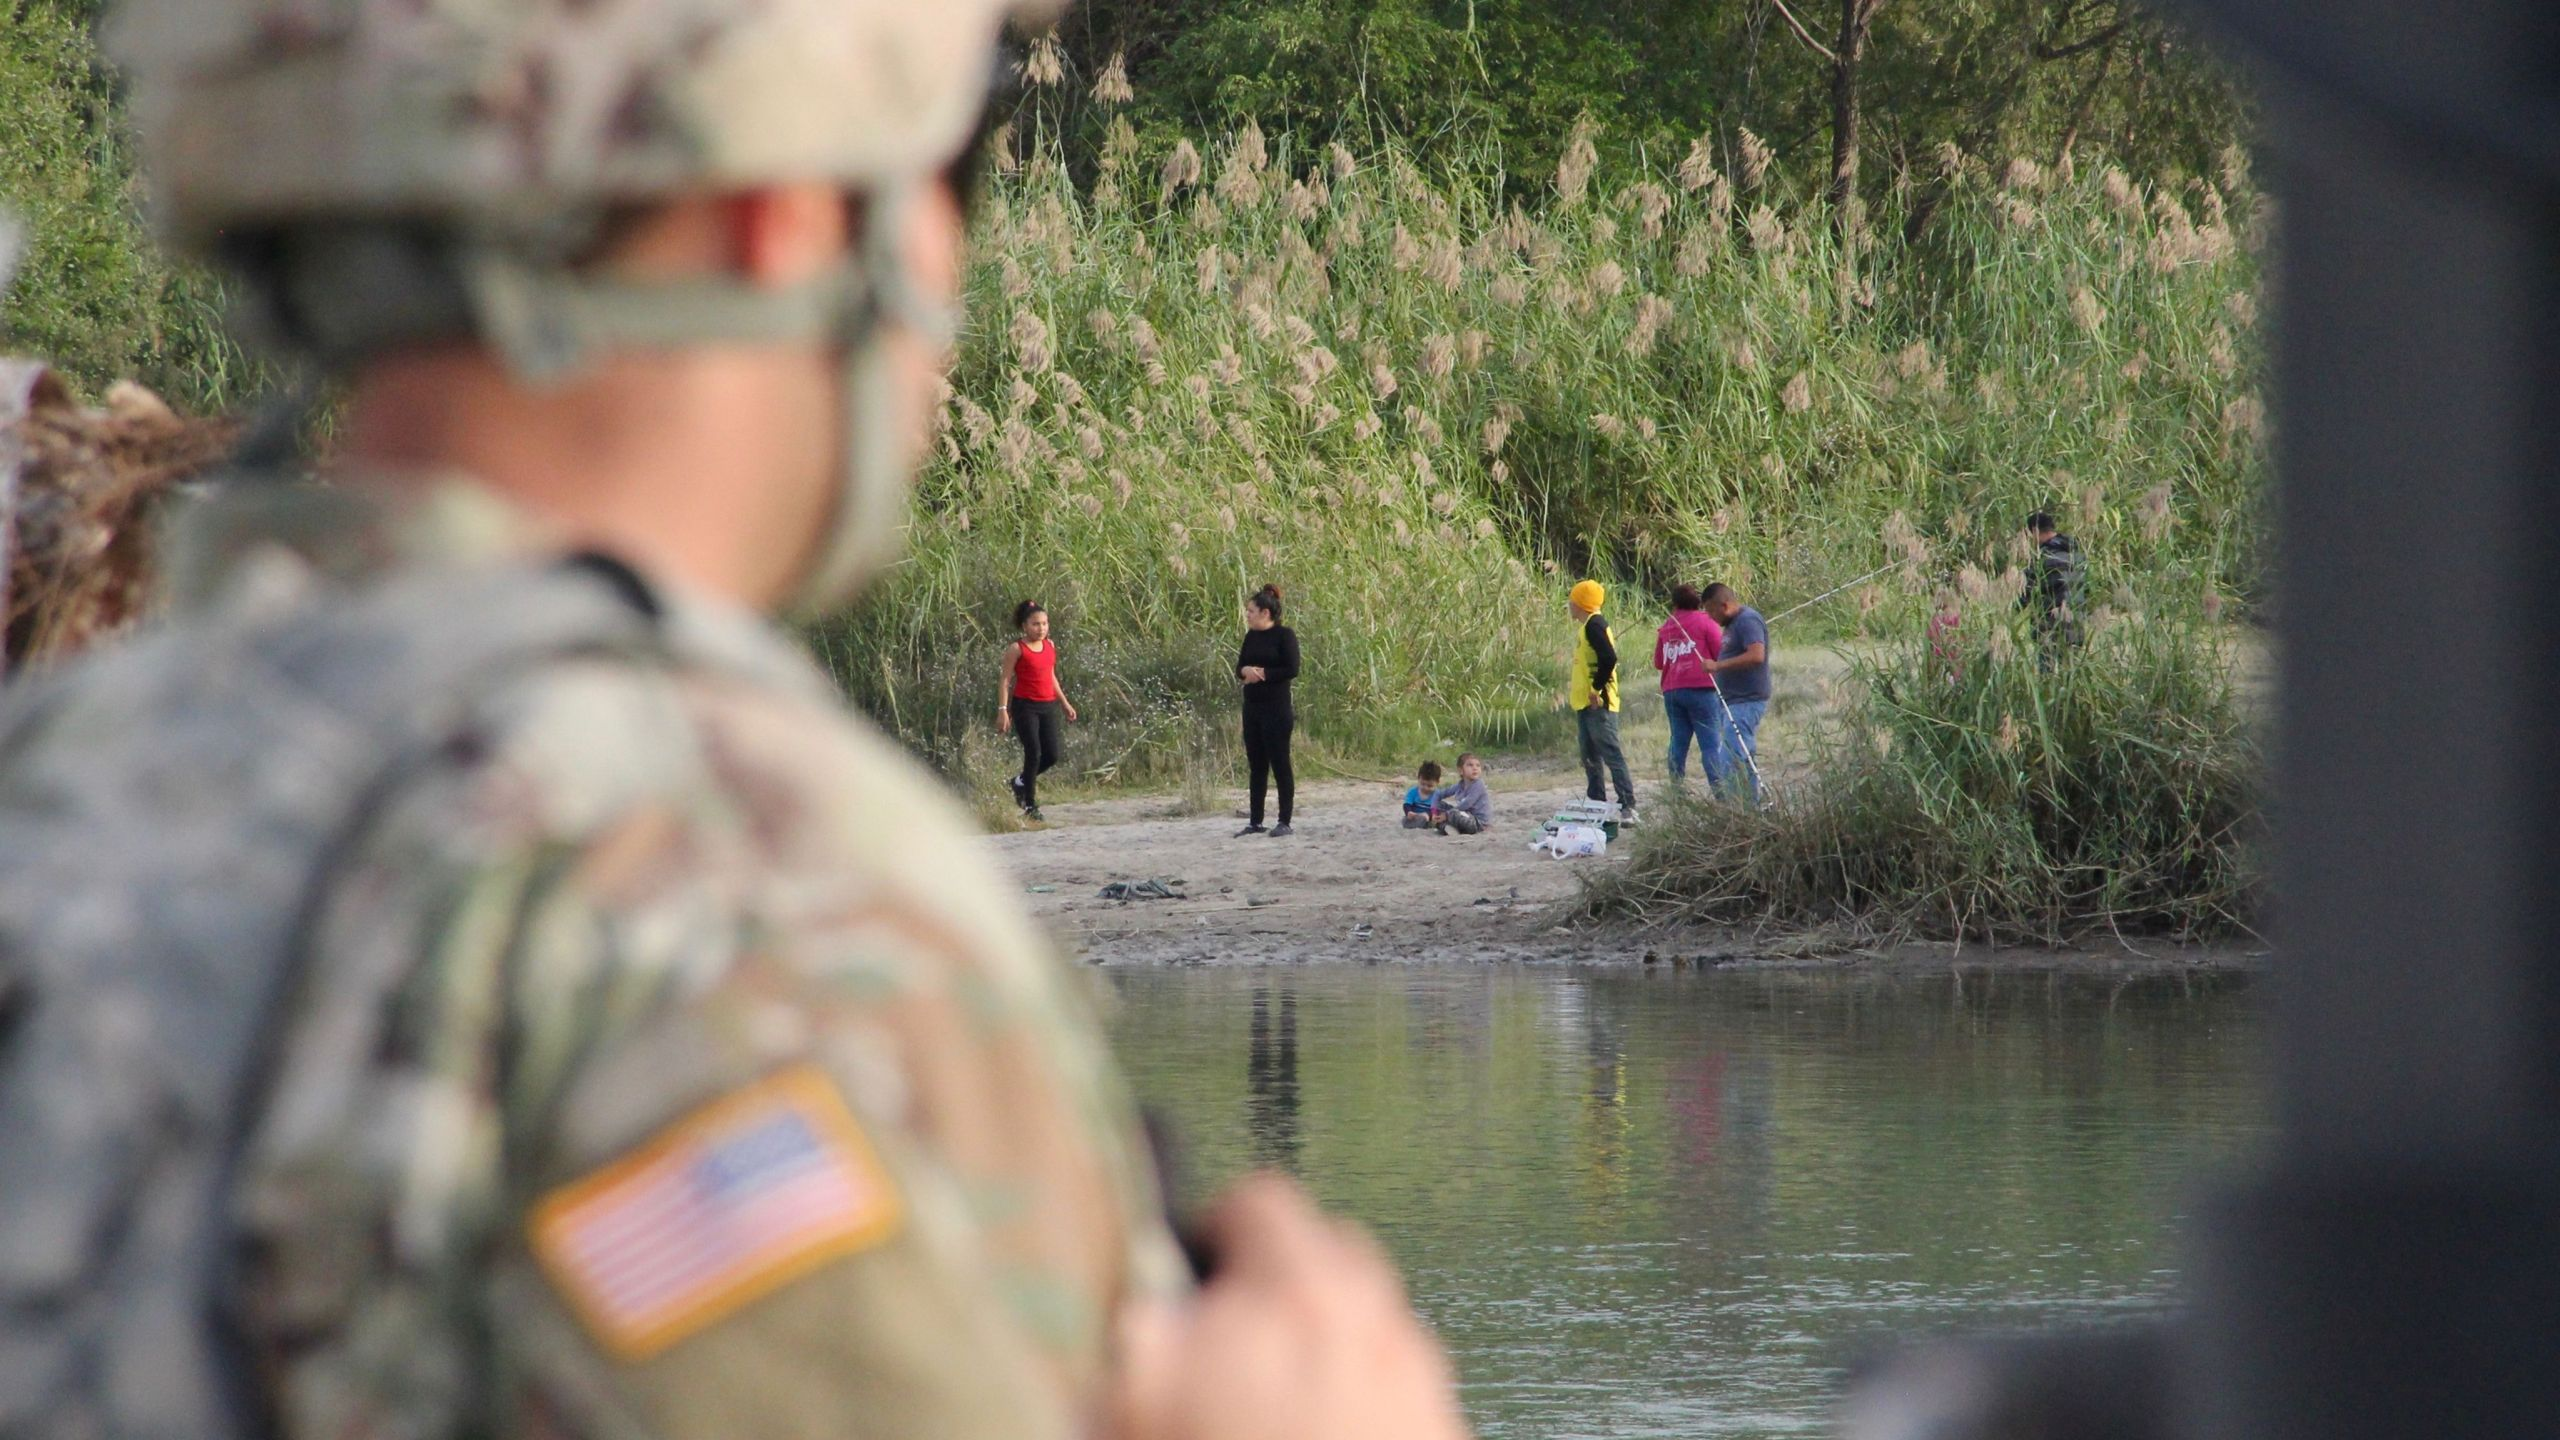 A soldier from the Kentucky-based 19th Engineer Battalion looks across the Rio Grande River from Laredo, Texas, into Nuevo Laredo, Mexico, where a group of people hang out on the river bank on Nov. 17, 2018. (Credit: Thomas Watkins / AFP / Getty Images)